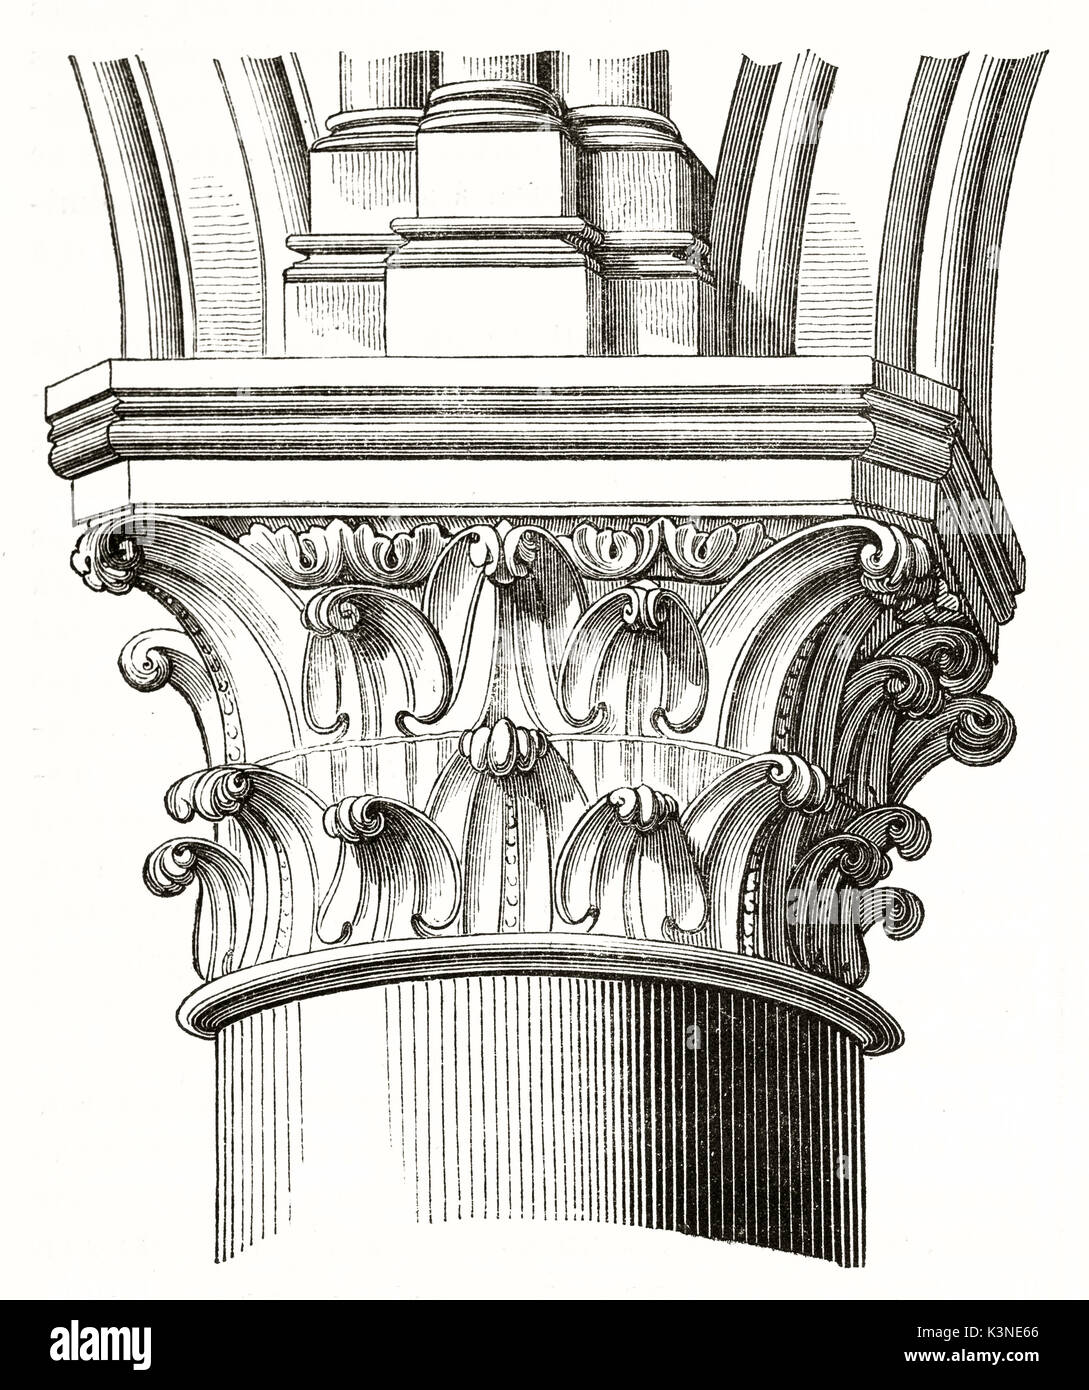 architectonic detail of a pillar's capital in the nave of Notre-Dame de Paris France. Isolated element on white background by unidentified author published on Magasin Pittoresque Paris1839 - Stock Image